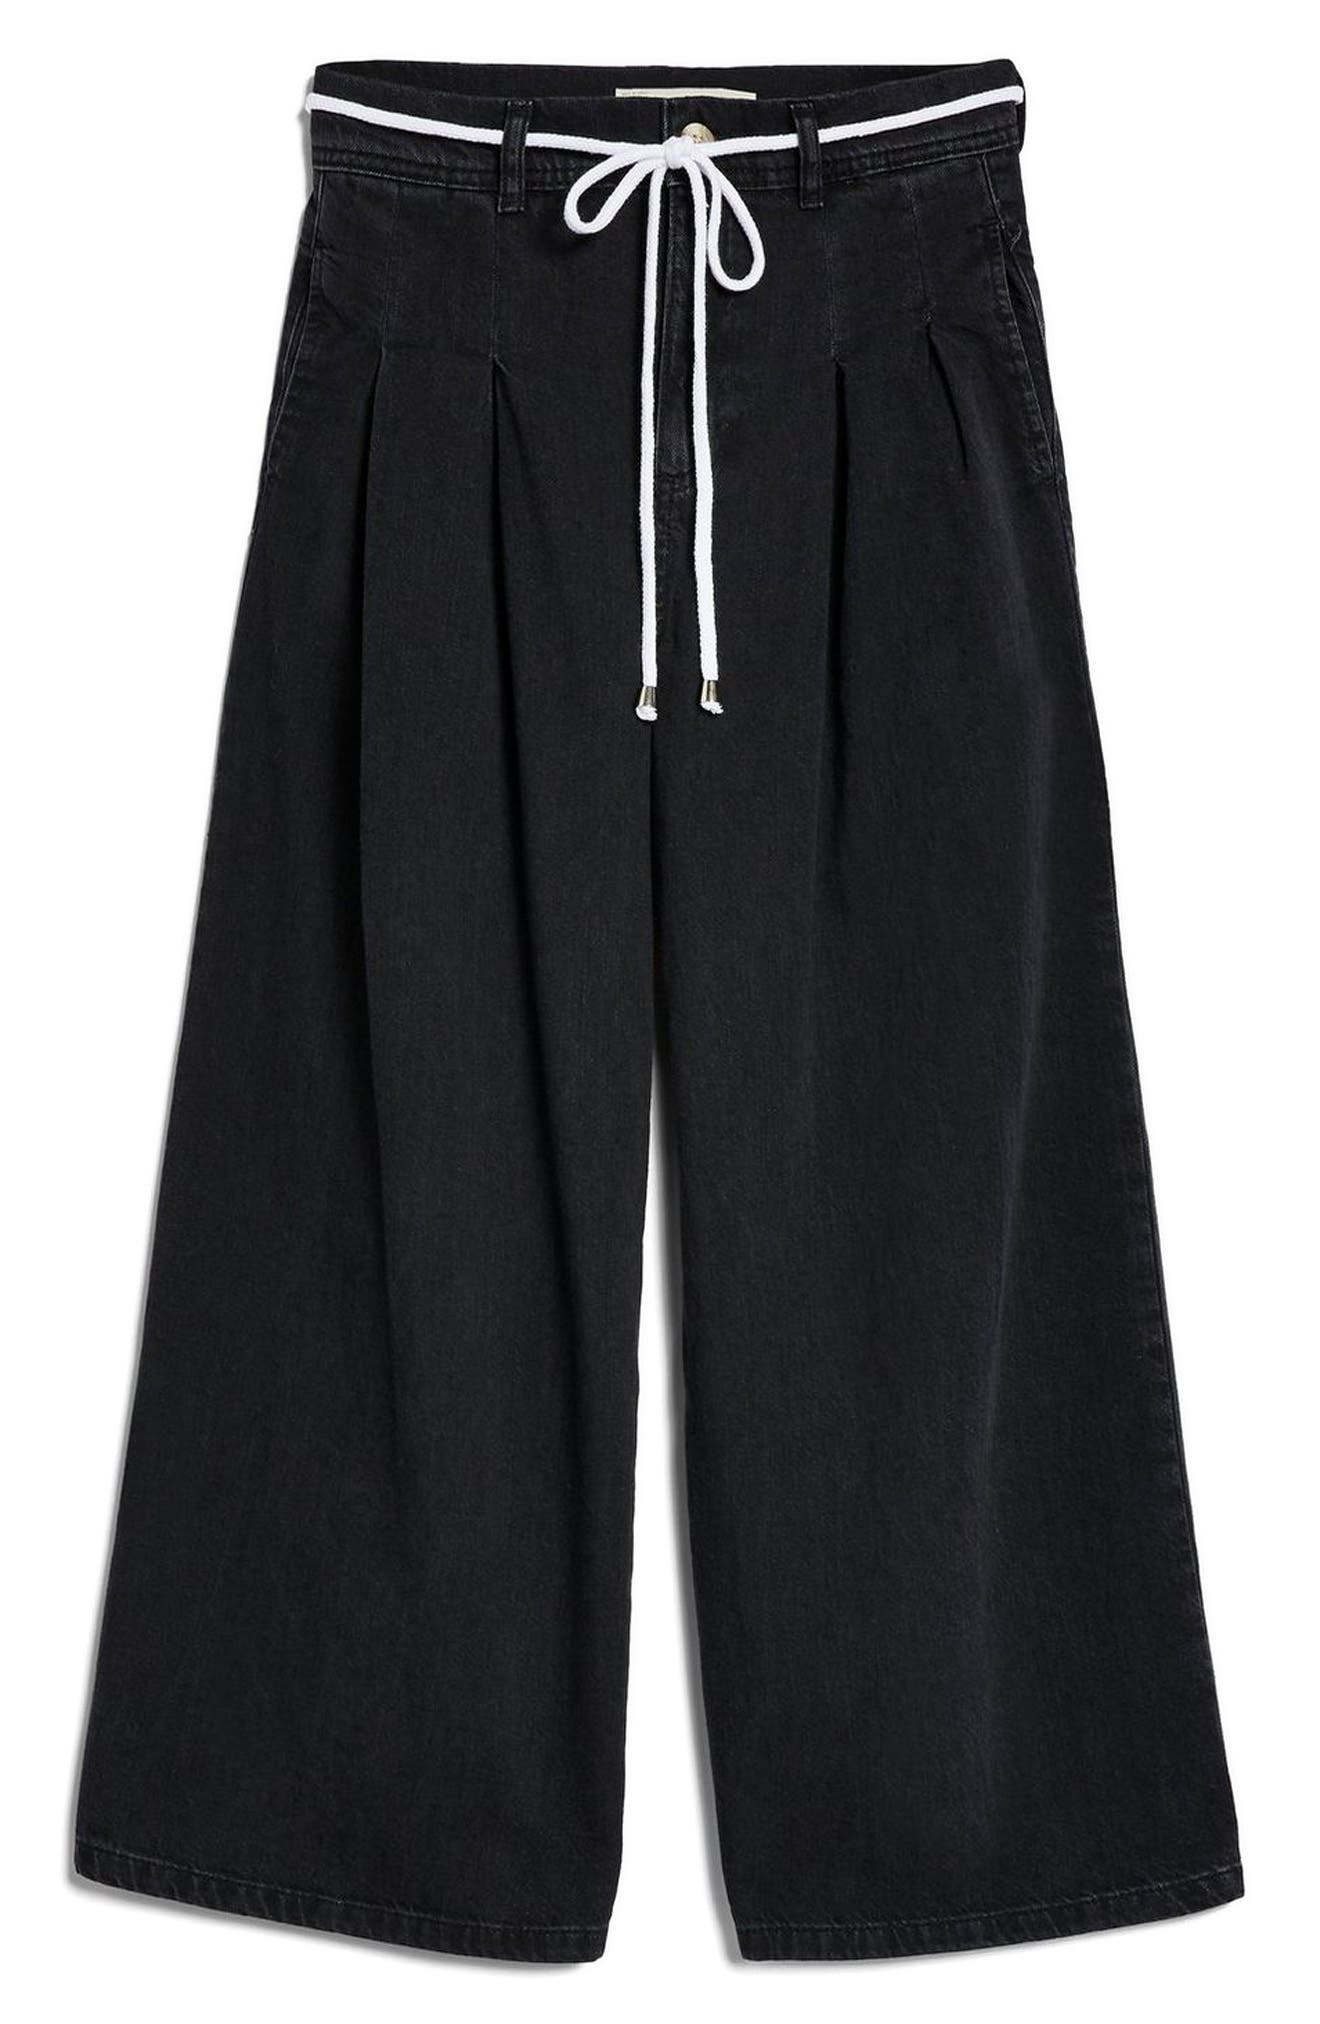 MOTO Pleated Tie Crop Jeans,                             Alternate thumbnail 3, color,                             Washed Black